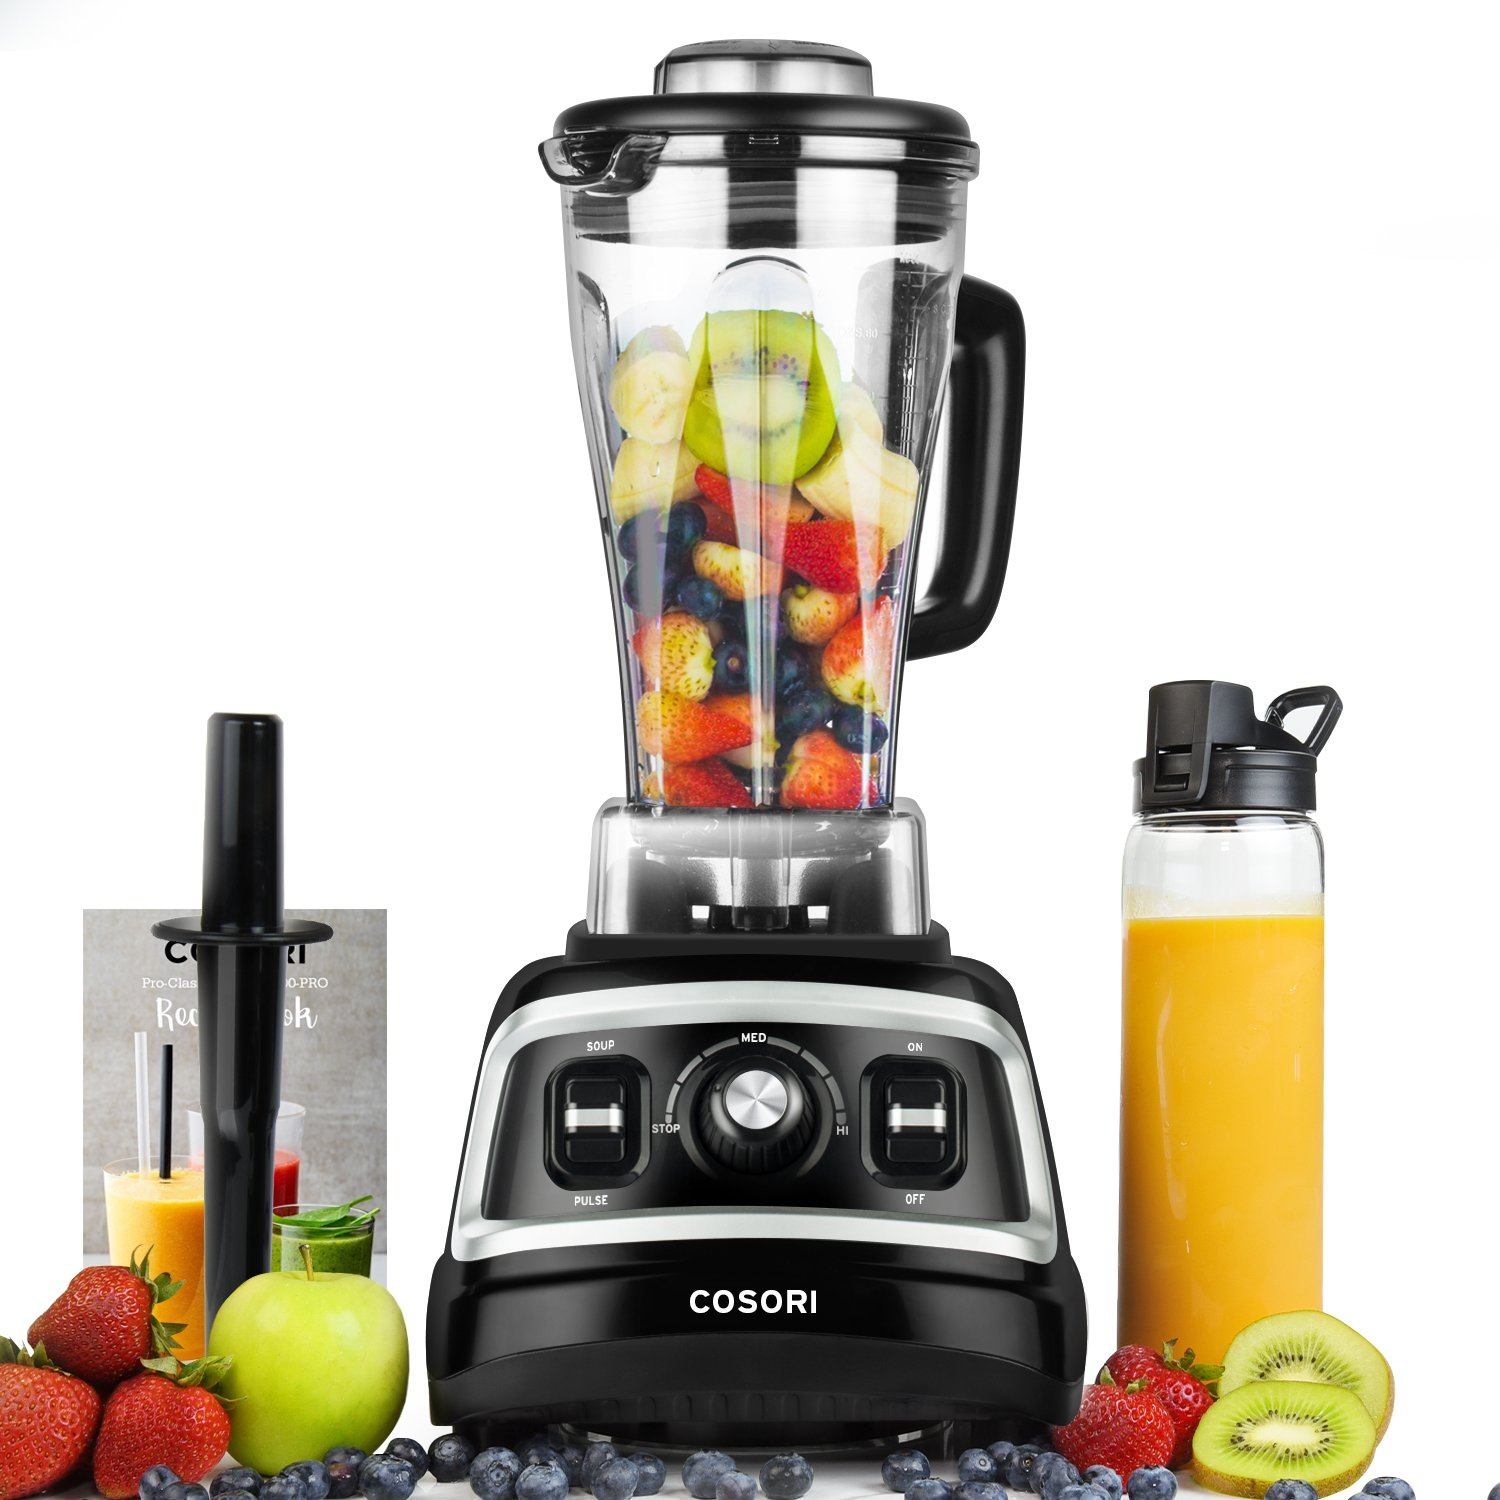 Top 10 Best Blender for Smoothies with Ice - Buyer's Guide 2